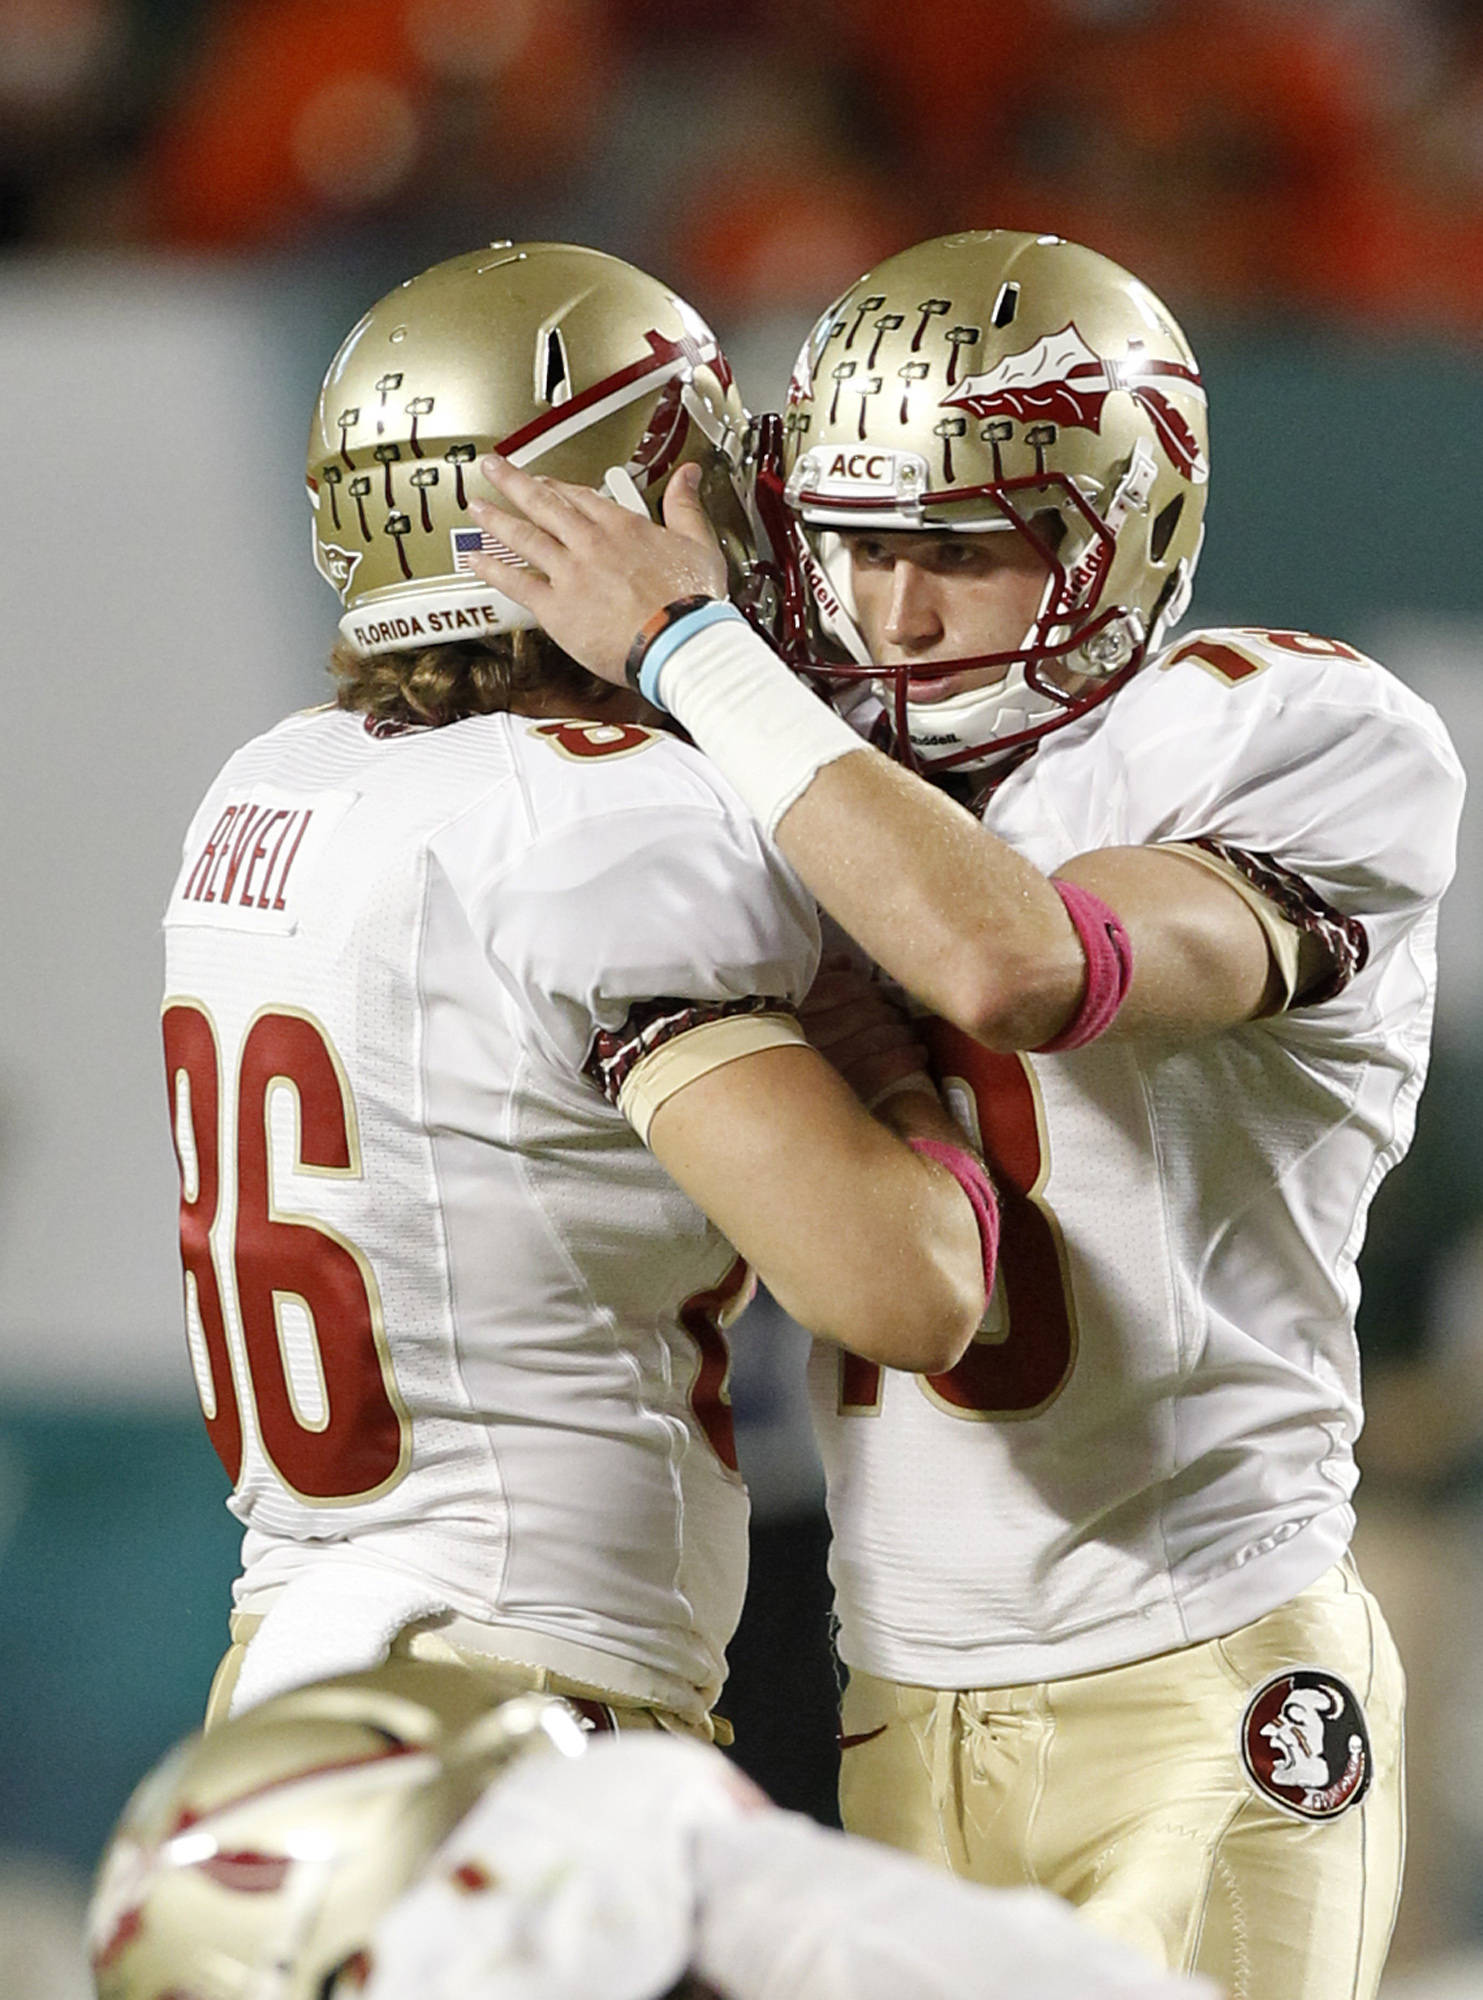 Florida State kicker Dustin Hopkins (18) is congratulated by teammate Chris Revell (86) after scoring a field goal against Miami during the first half of an NCAA college football game in Miami, Saturday, Oct. 20, 2012. (AP Photo/Alan Diaz)